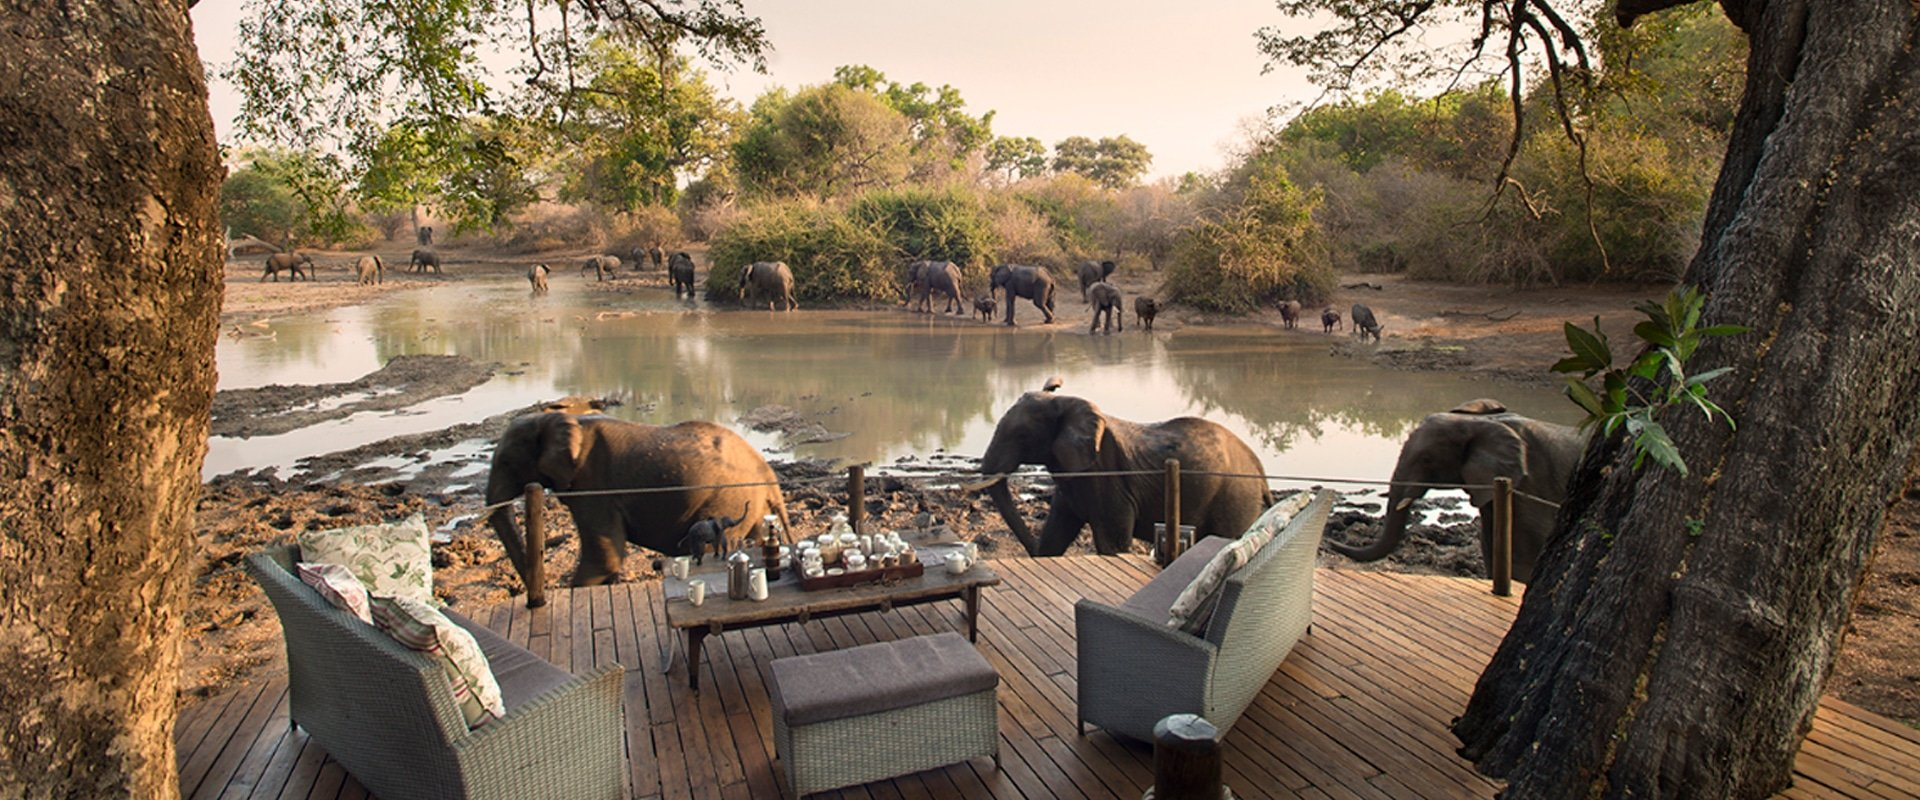 Sit back for an armchair Safari at Kanga Camp